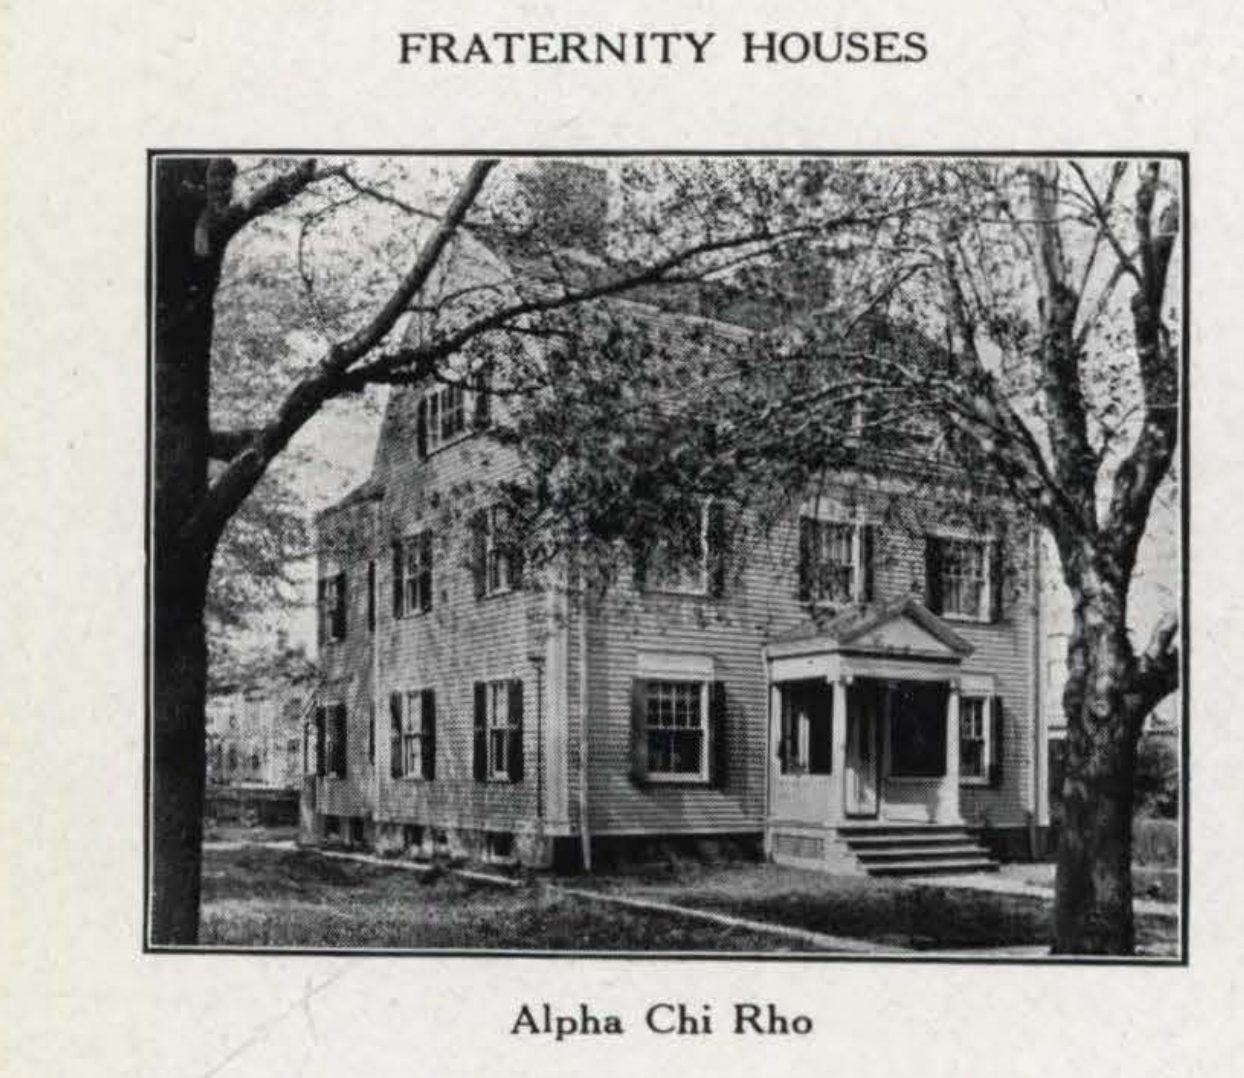 The Chapter House in 1916